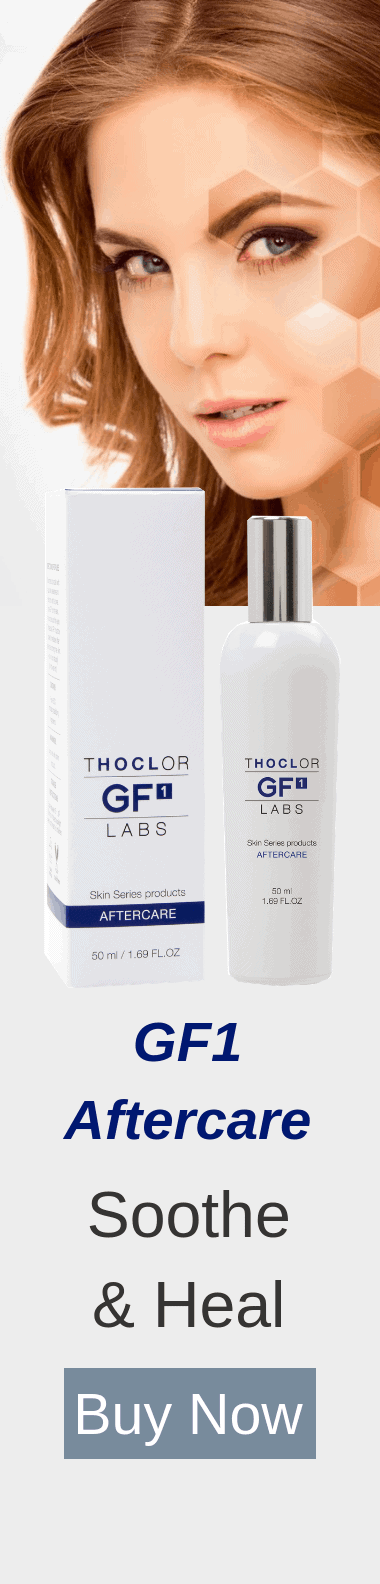 Recover rapidly from aesthetic treatments with Thoclor GF1